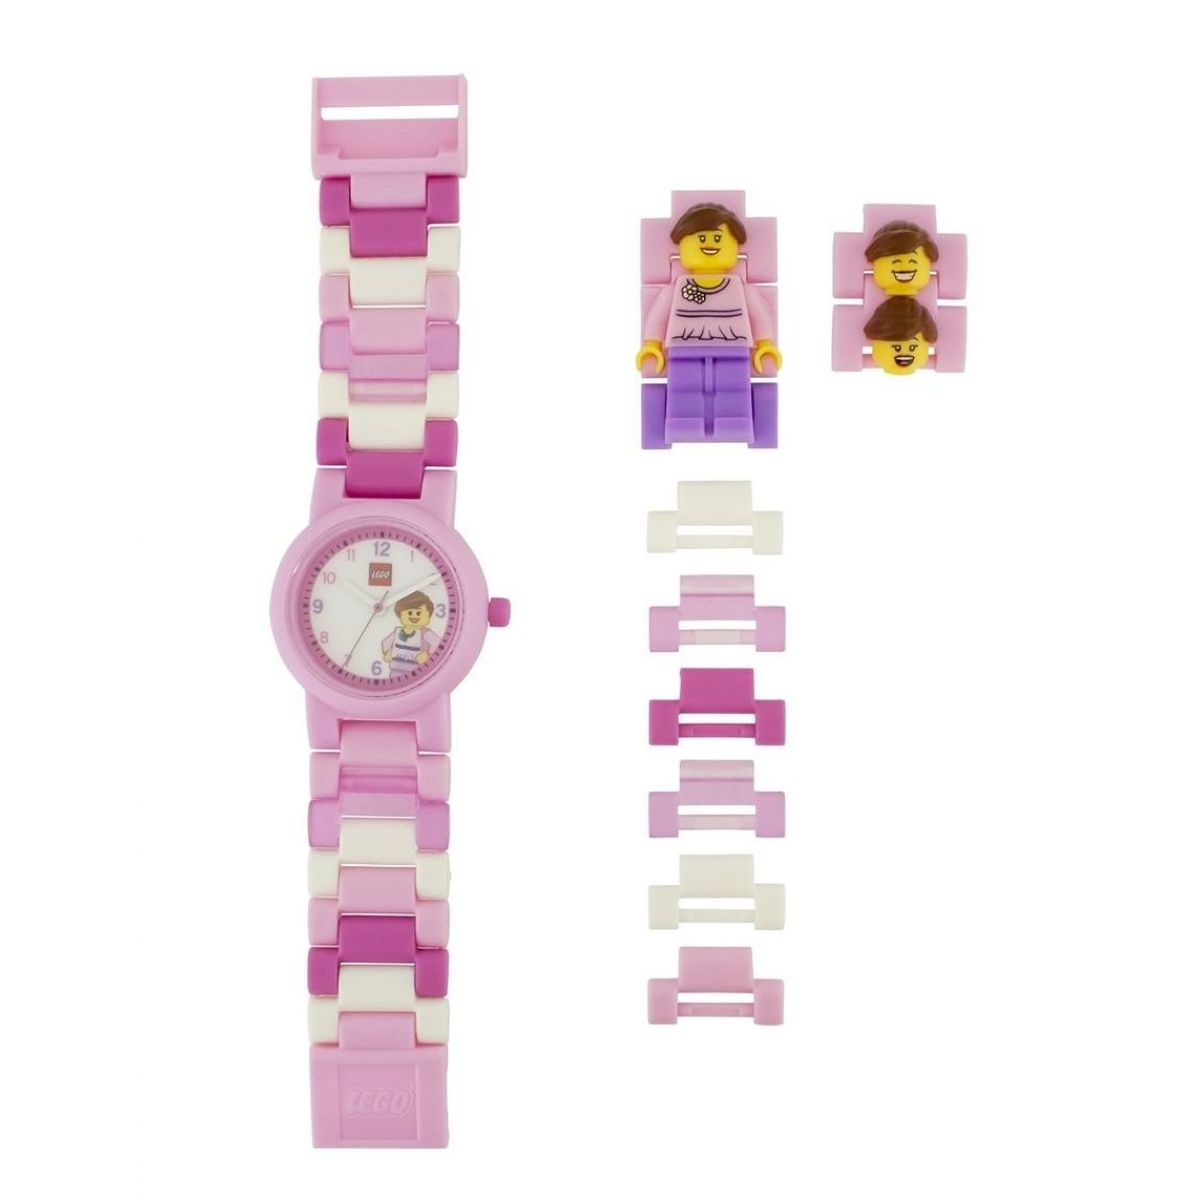 LEGO Classic Pink hodinky